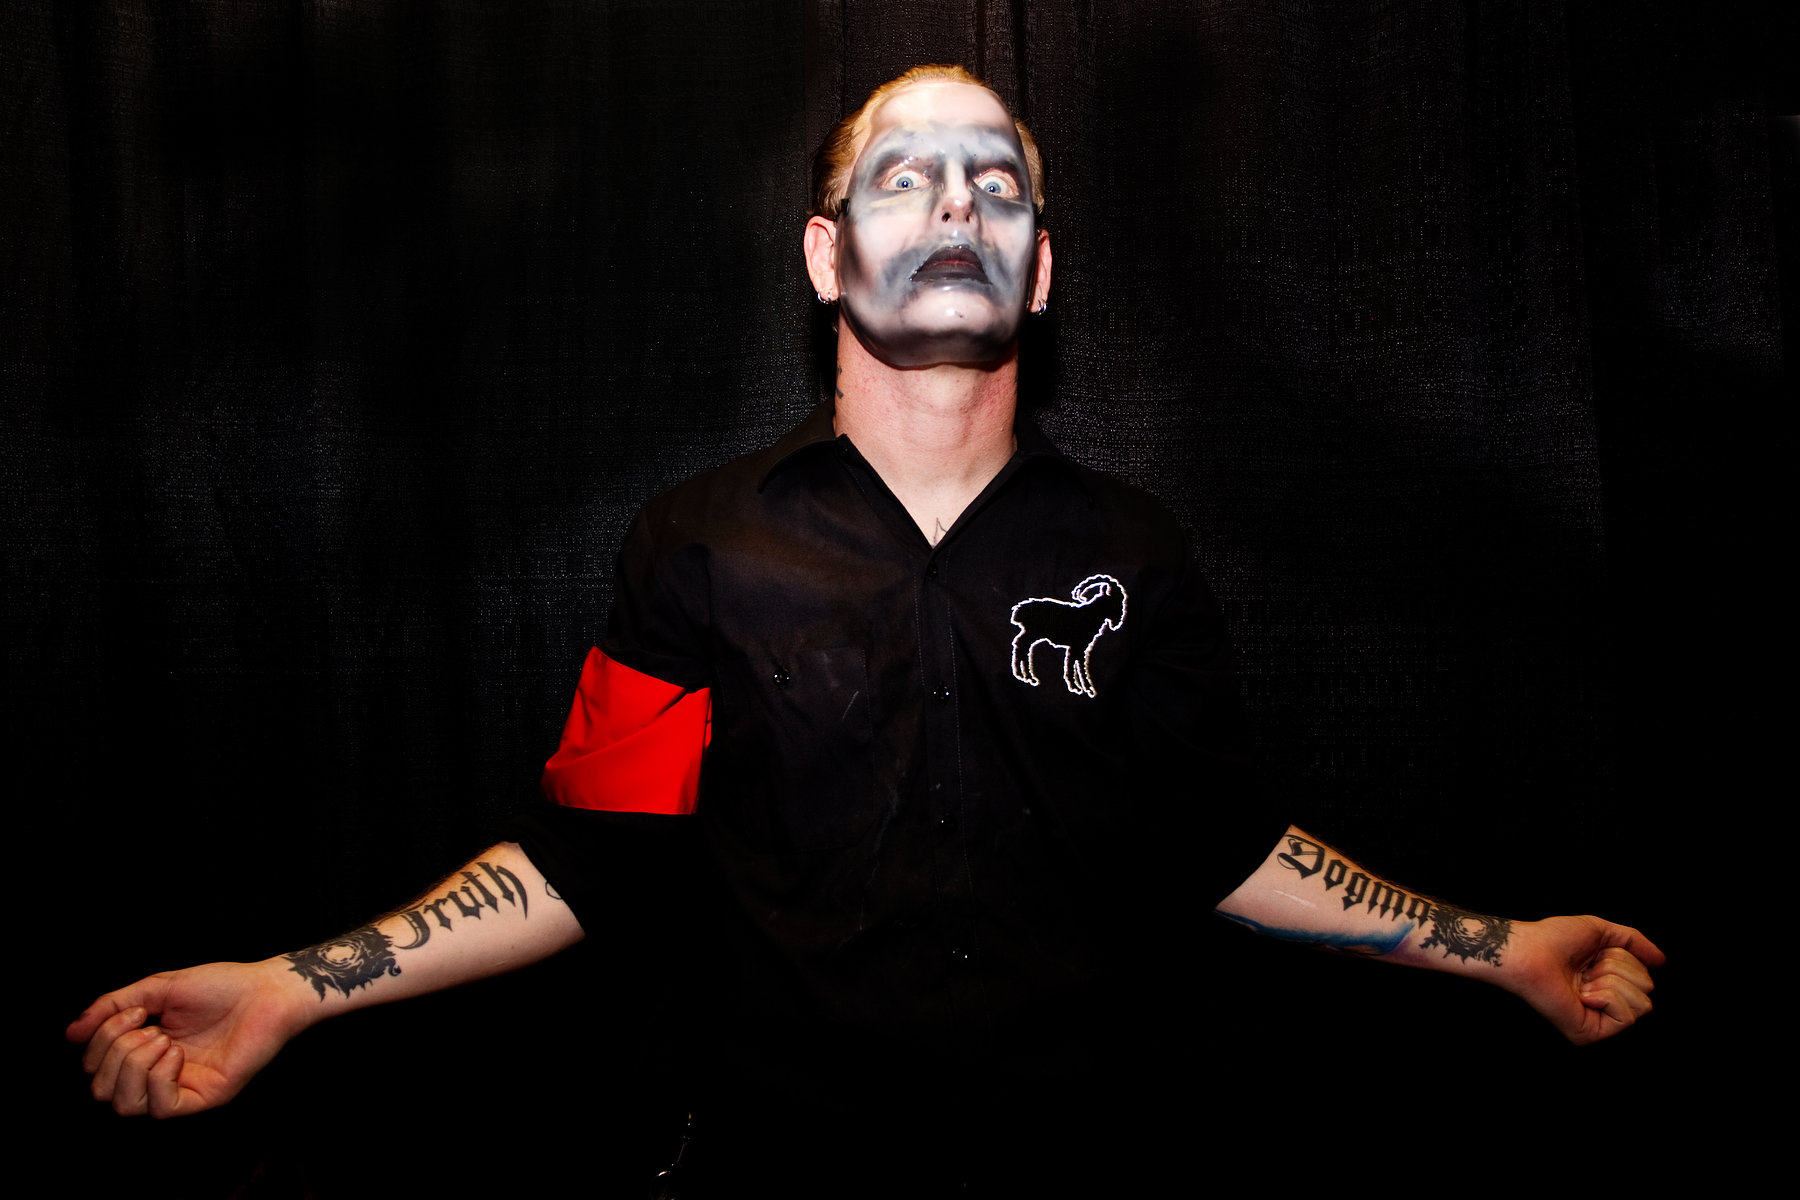 Corey-Slipknot